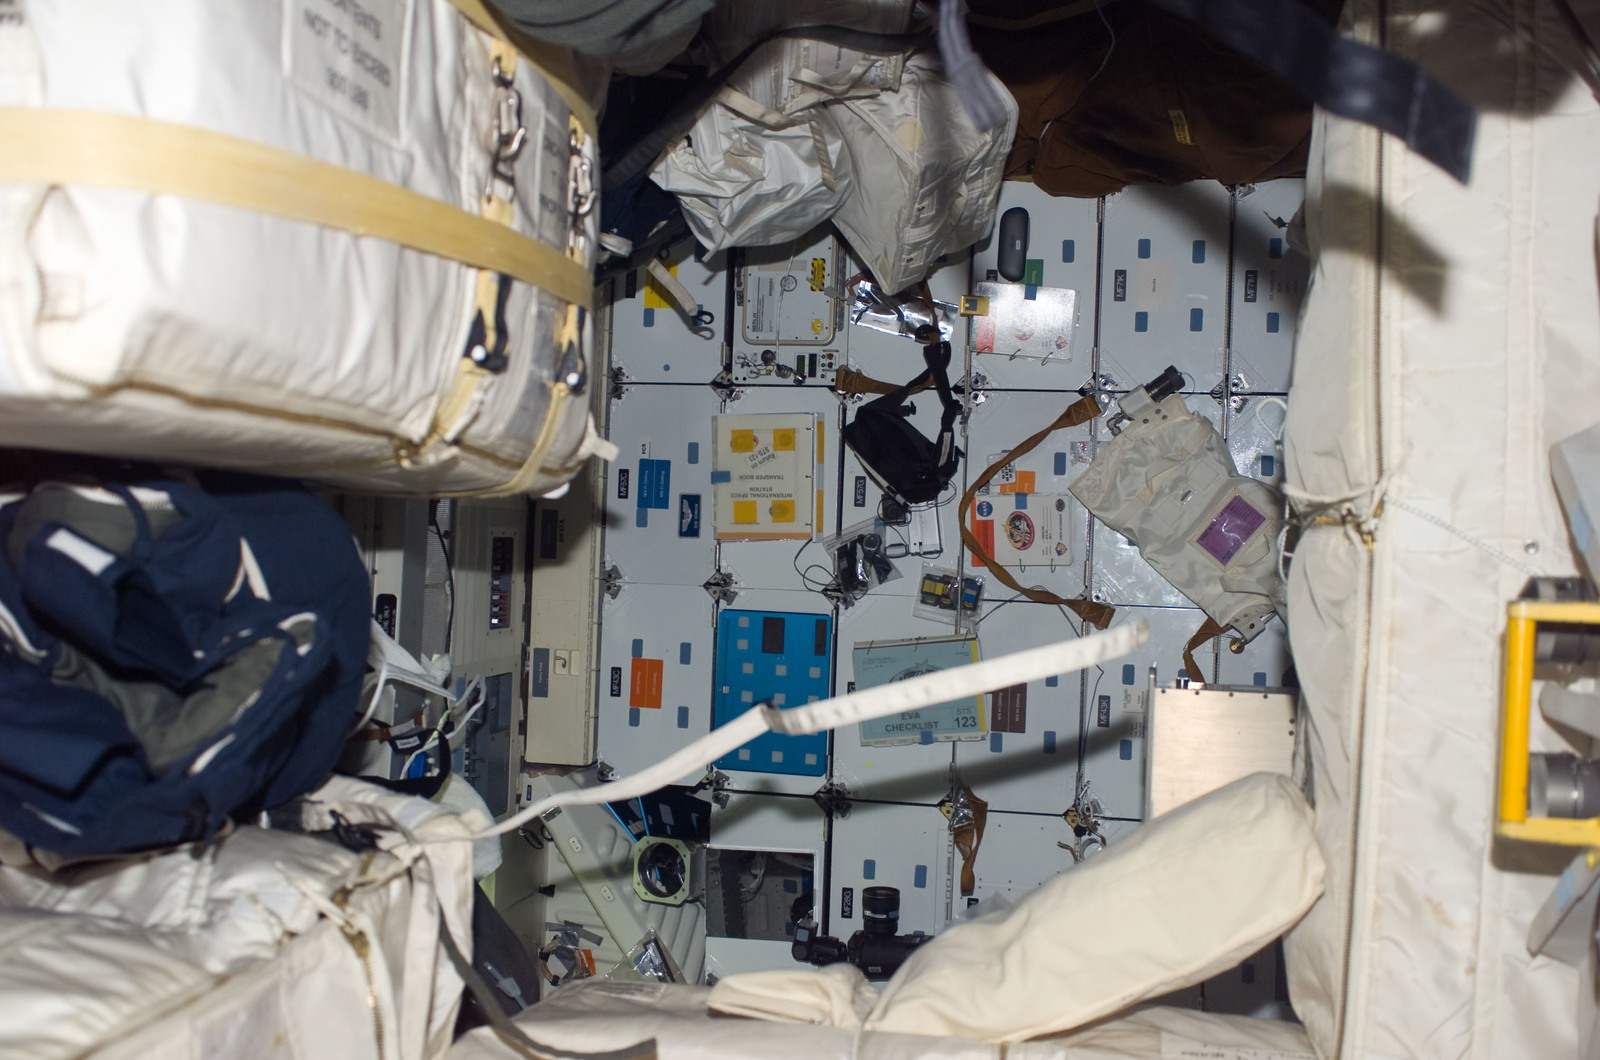 S123E008387 - STS-123 - FWD MDDK lockers on Space Shuttle Endeavour during Joint Operations